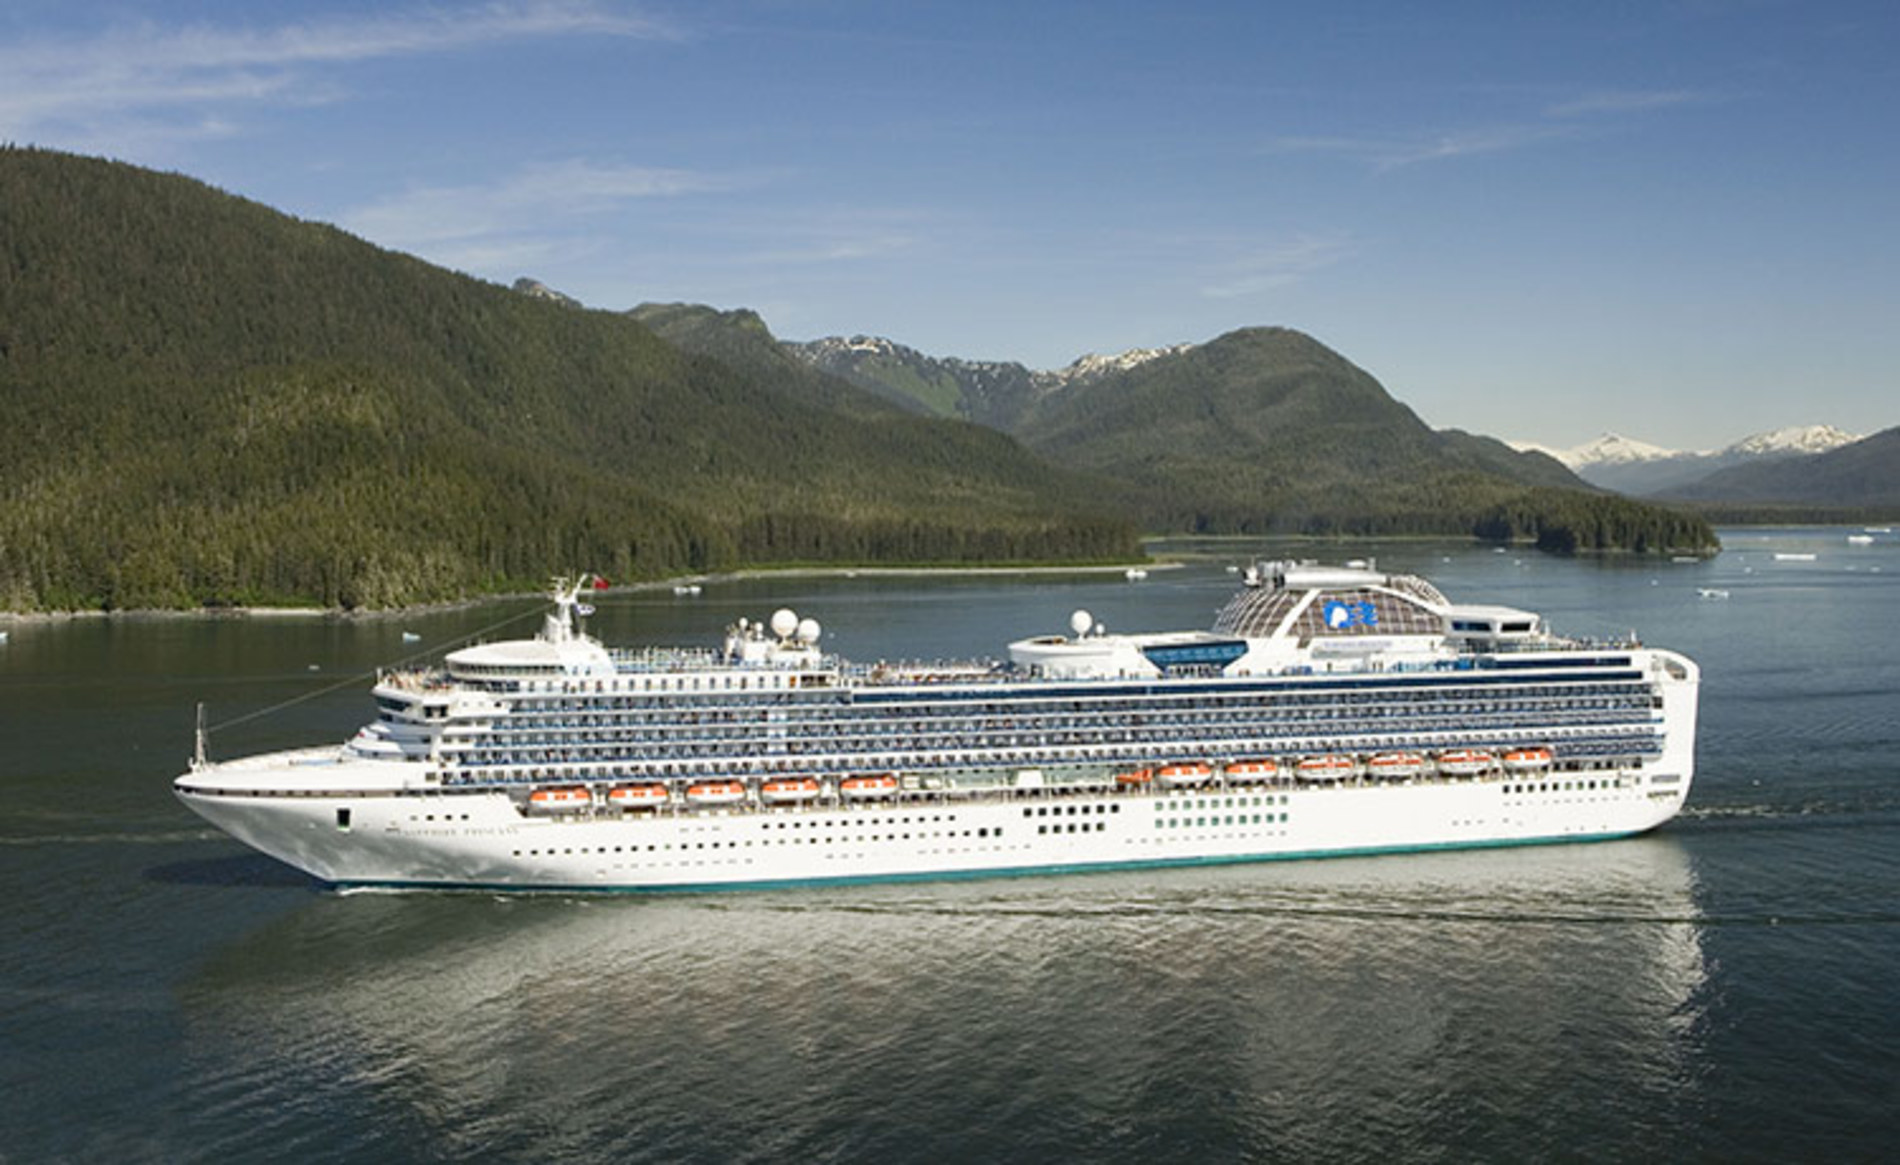 A photo of the Sapphire Princess cruise ship